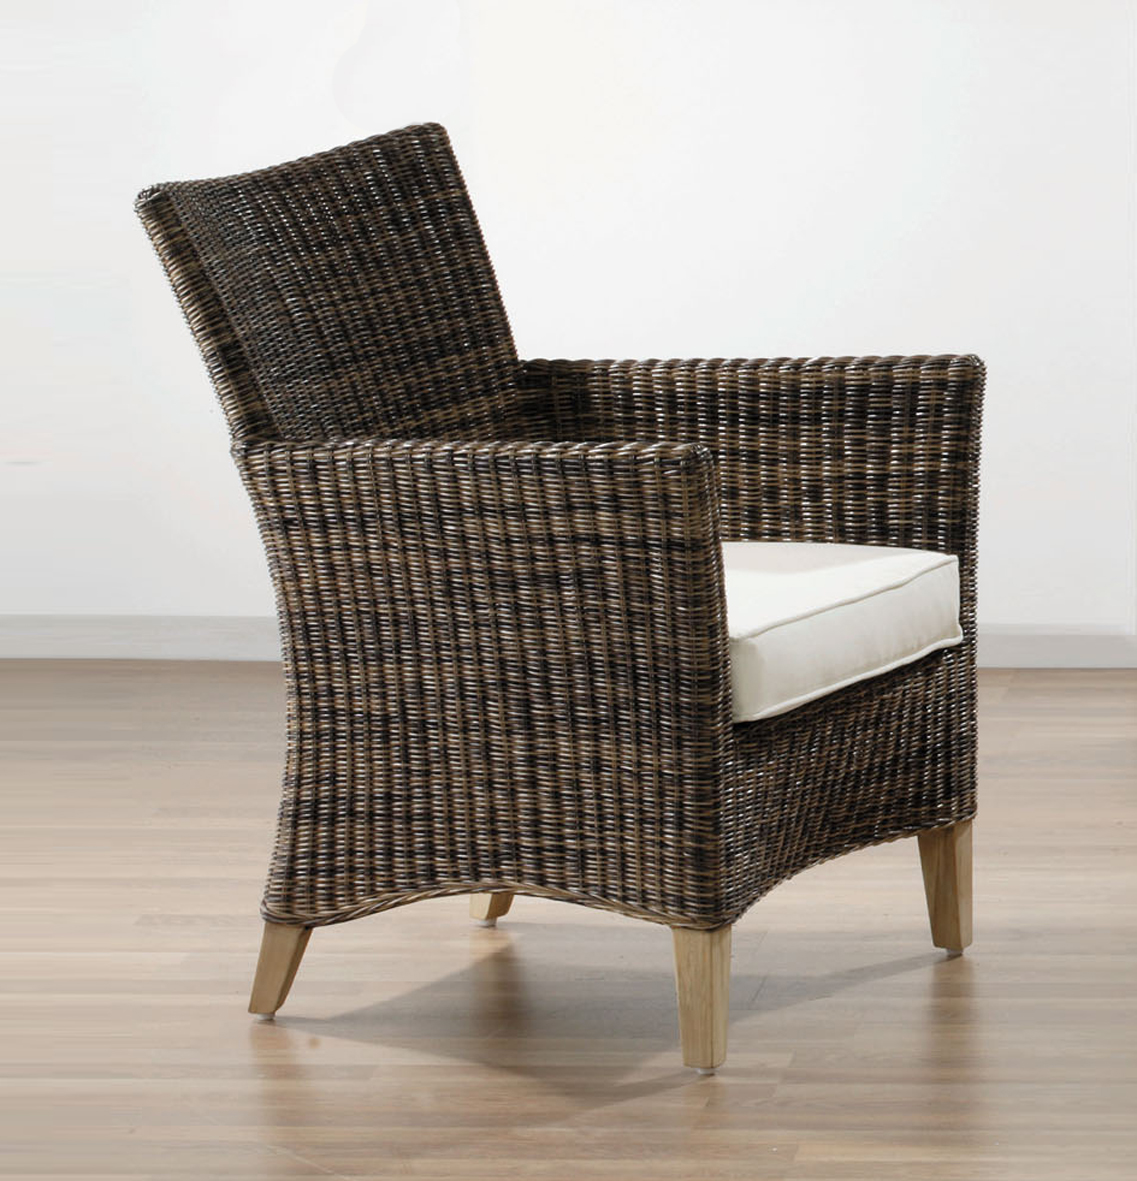 Why you should select wicker chairs CareHomeDecor